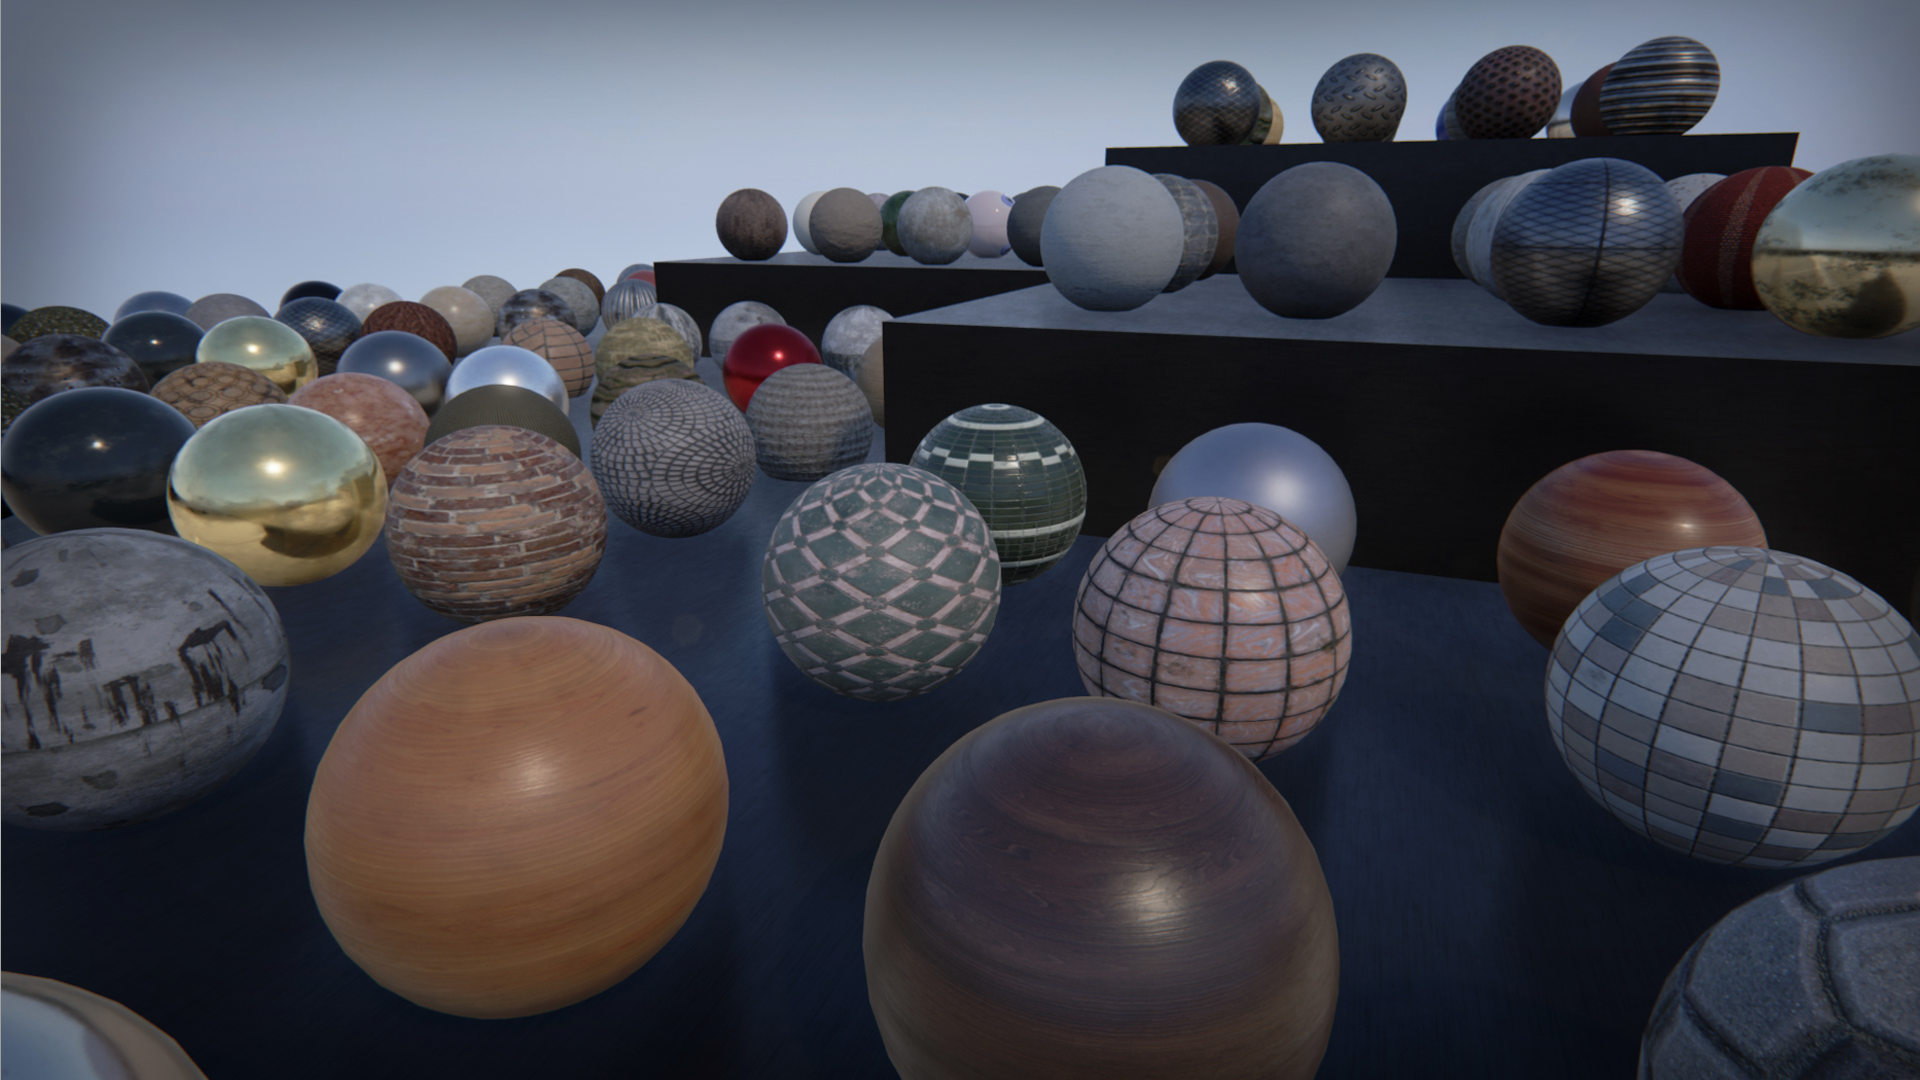 100 PBR Substances by Allegorithmic in Materials - UE4 Marketplace